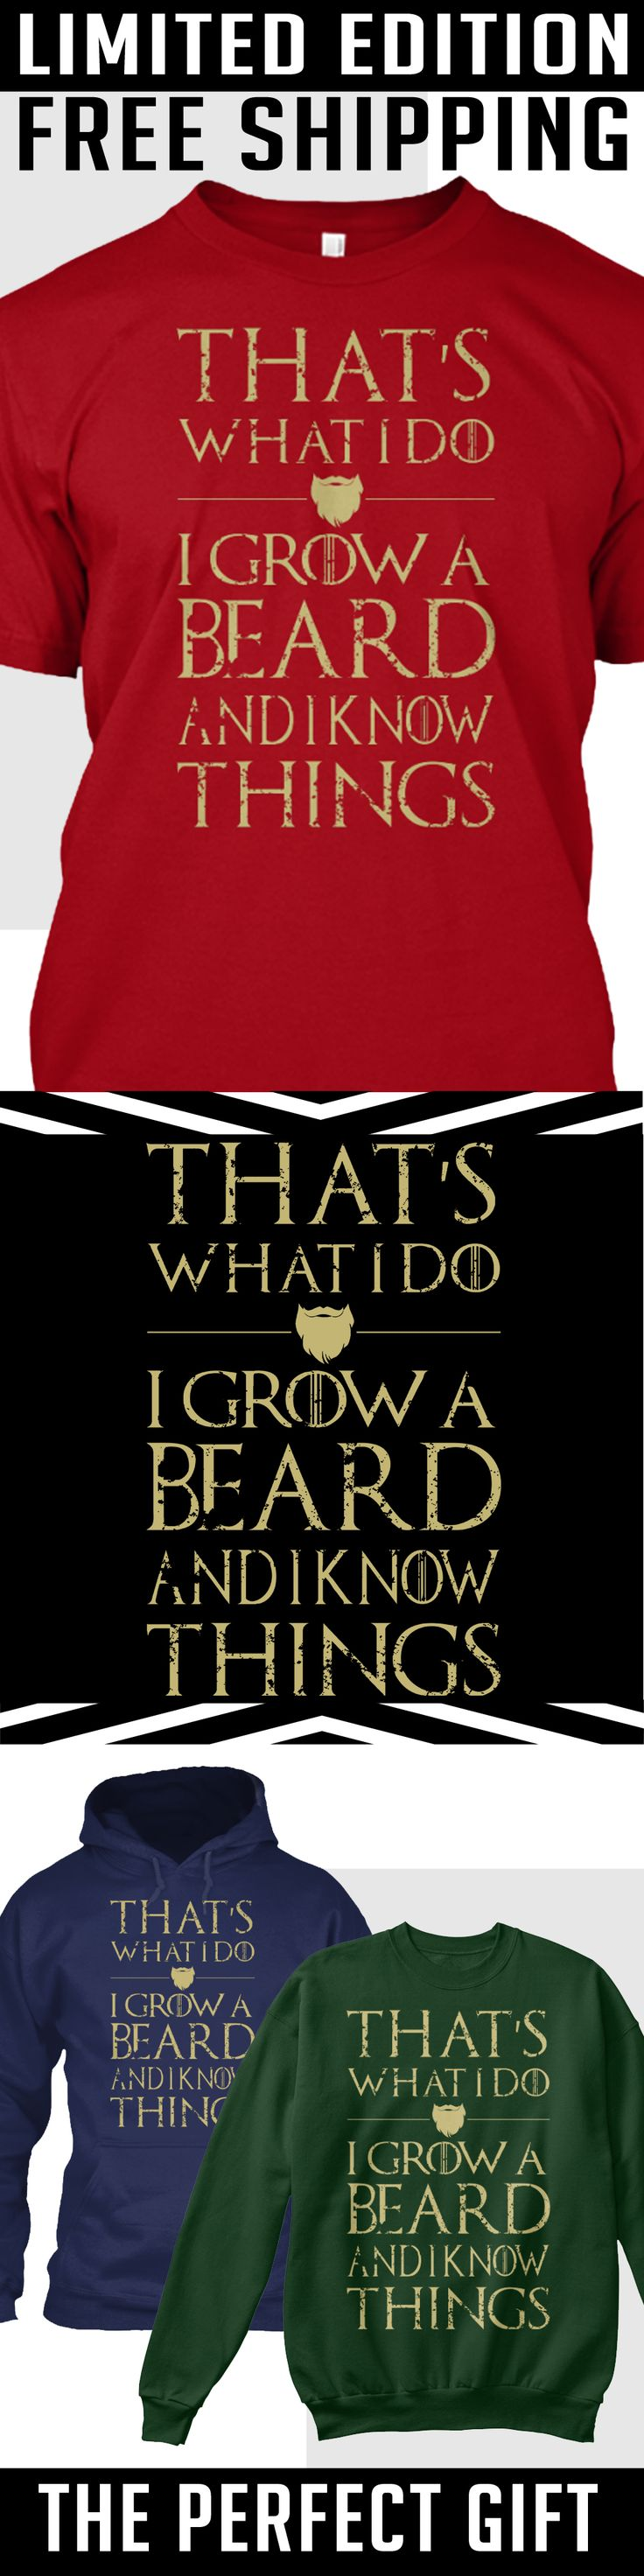 Grow Beard Know Things - Limited Edition. Only 2 days left for free shipping, ge...